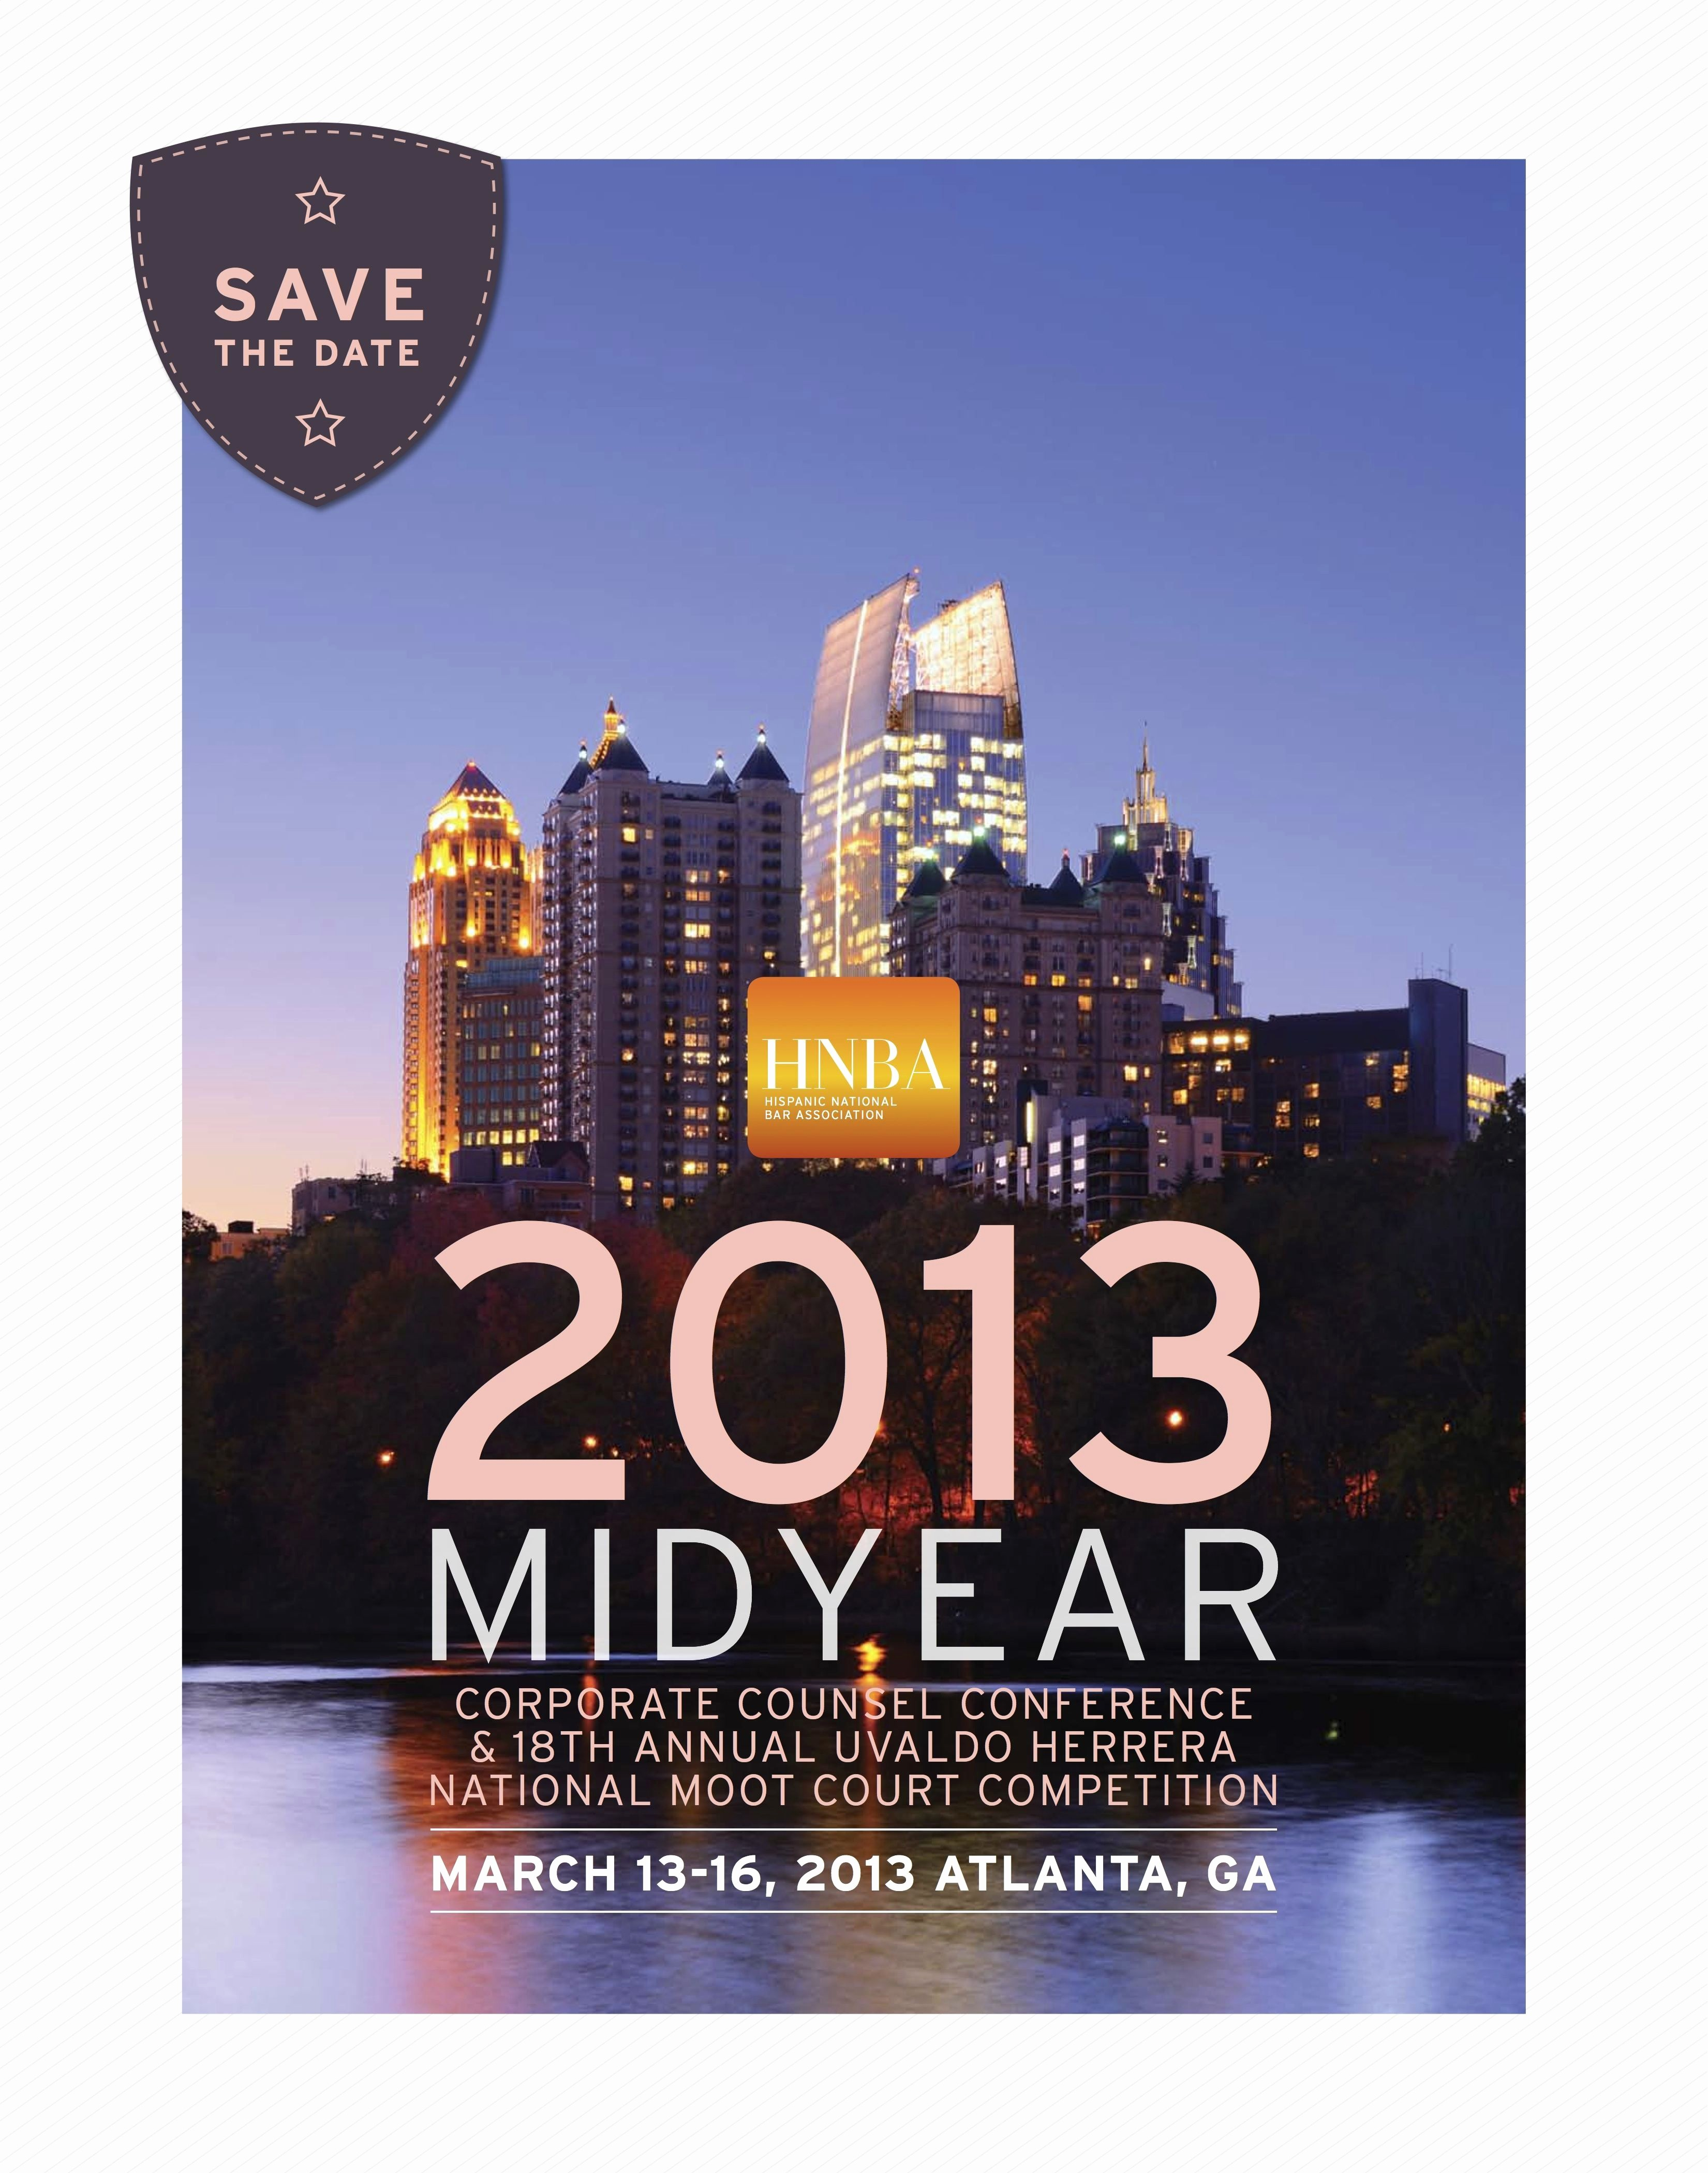 Save the Date Flyer Ideas Unique Save the Date Card for the 2013 Mid Year Corporate Counsel